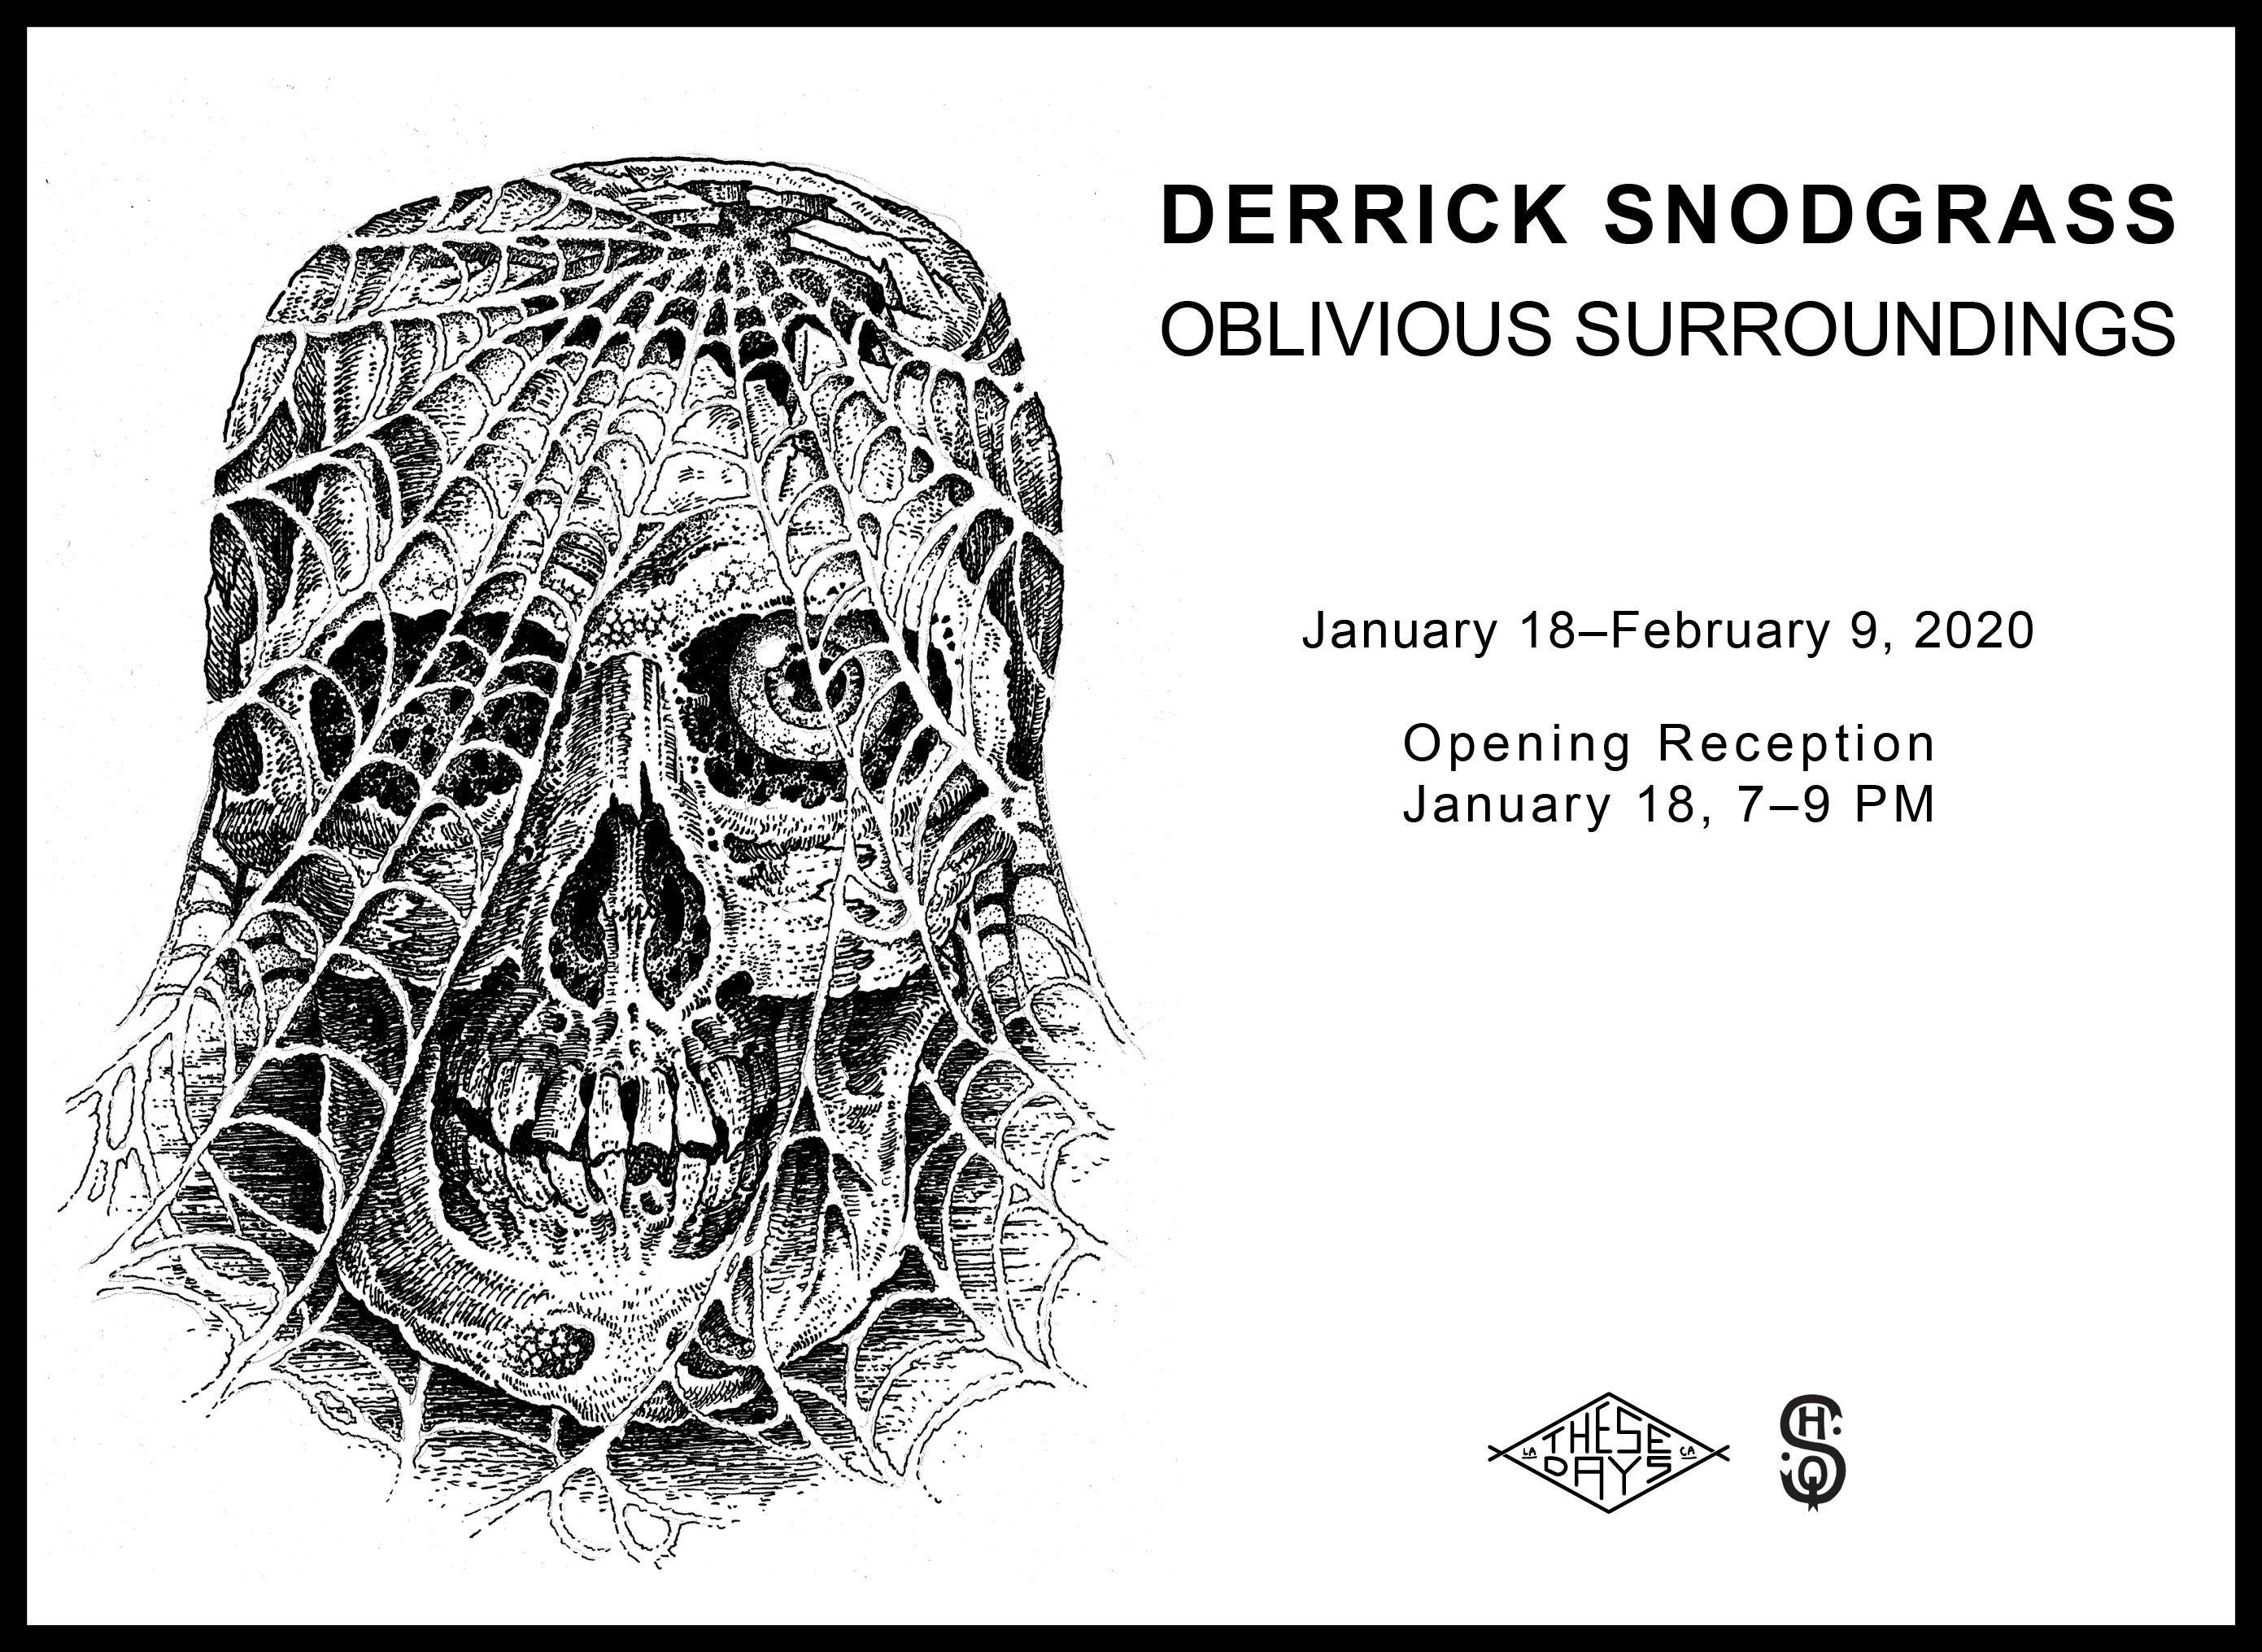 OBLIVIOUS SURROUNDINGS | Derrick Snodgrass